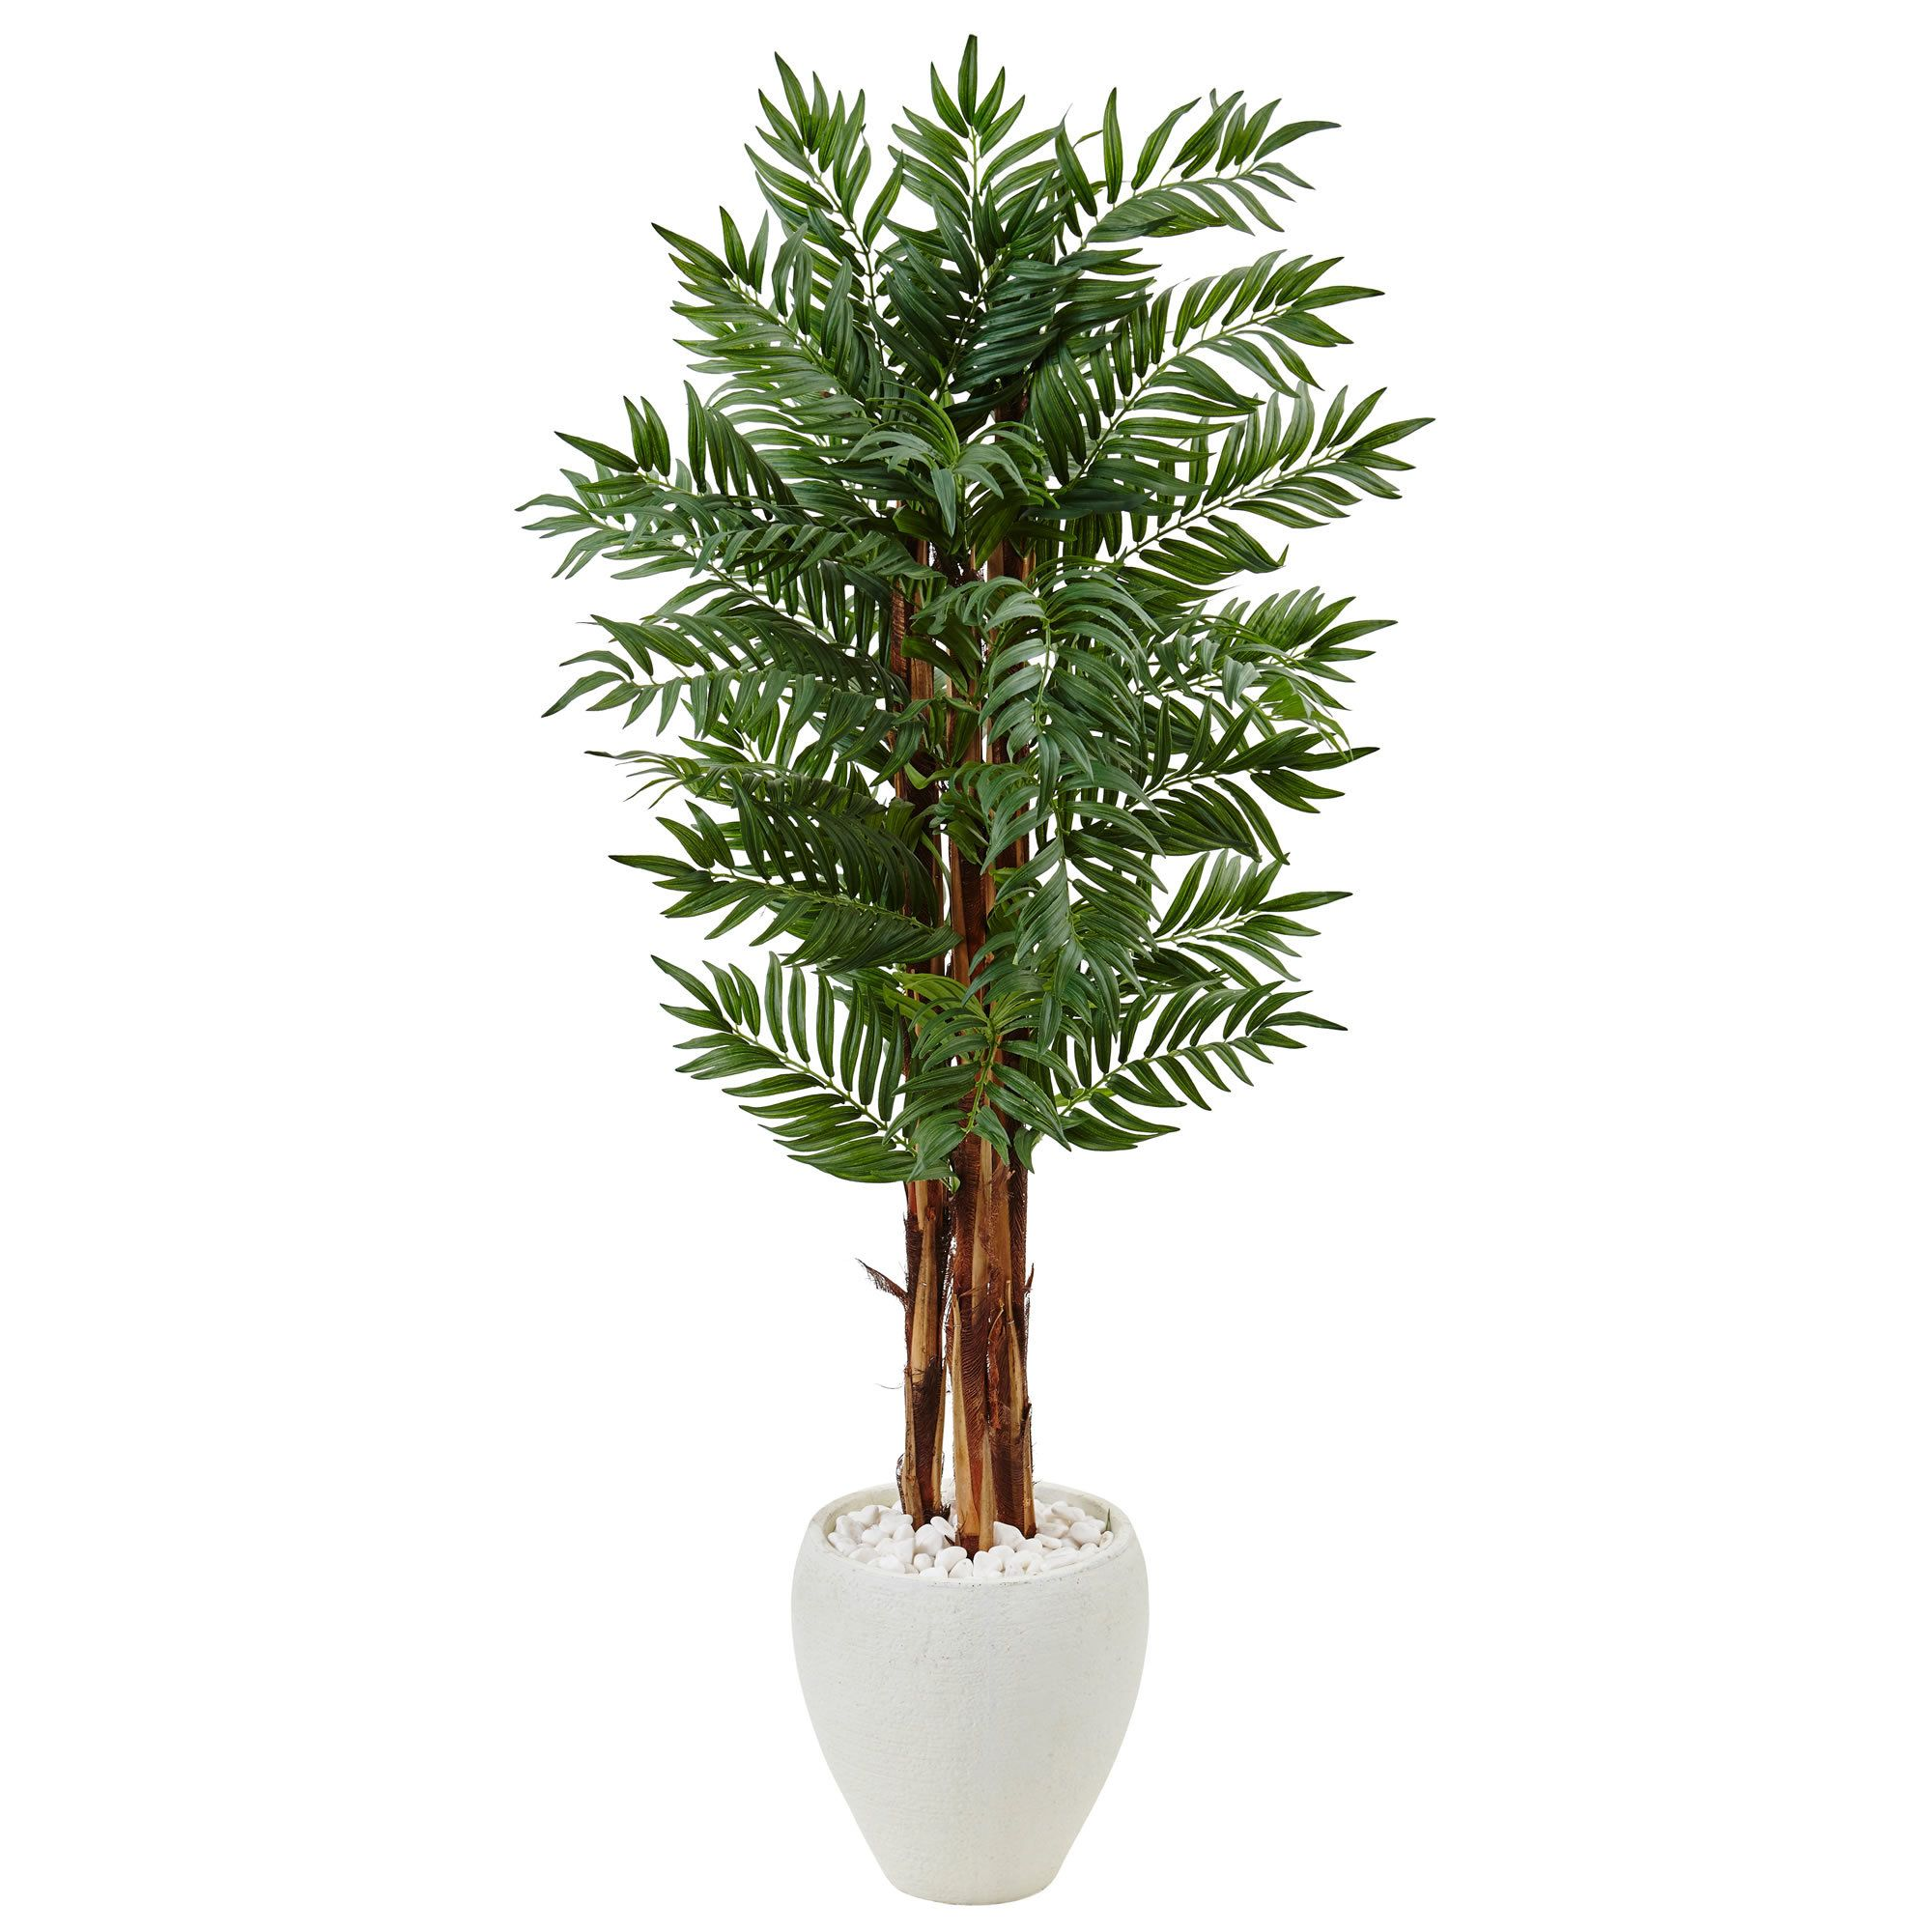 Artificial parlor floor palm tree in planter products pinterest